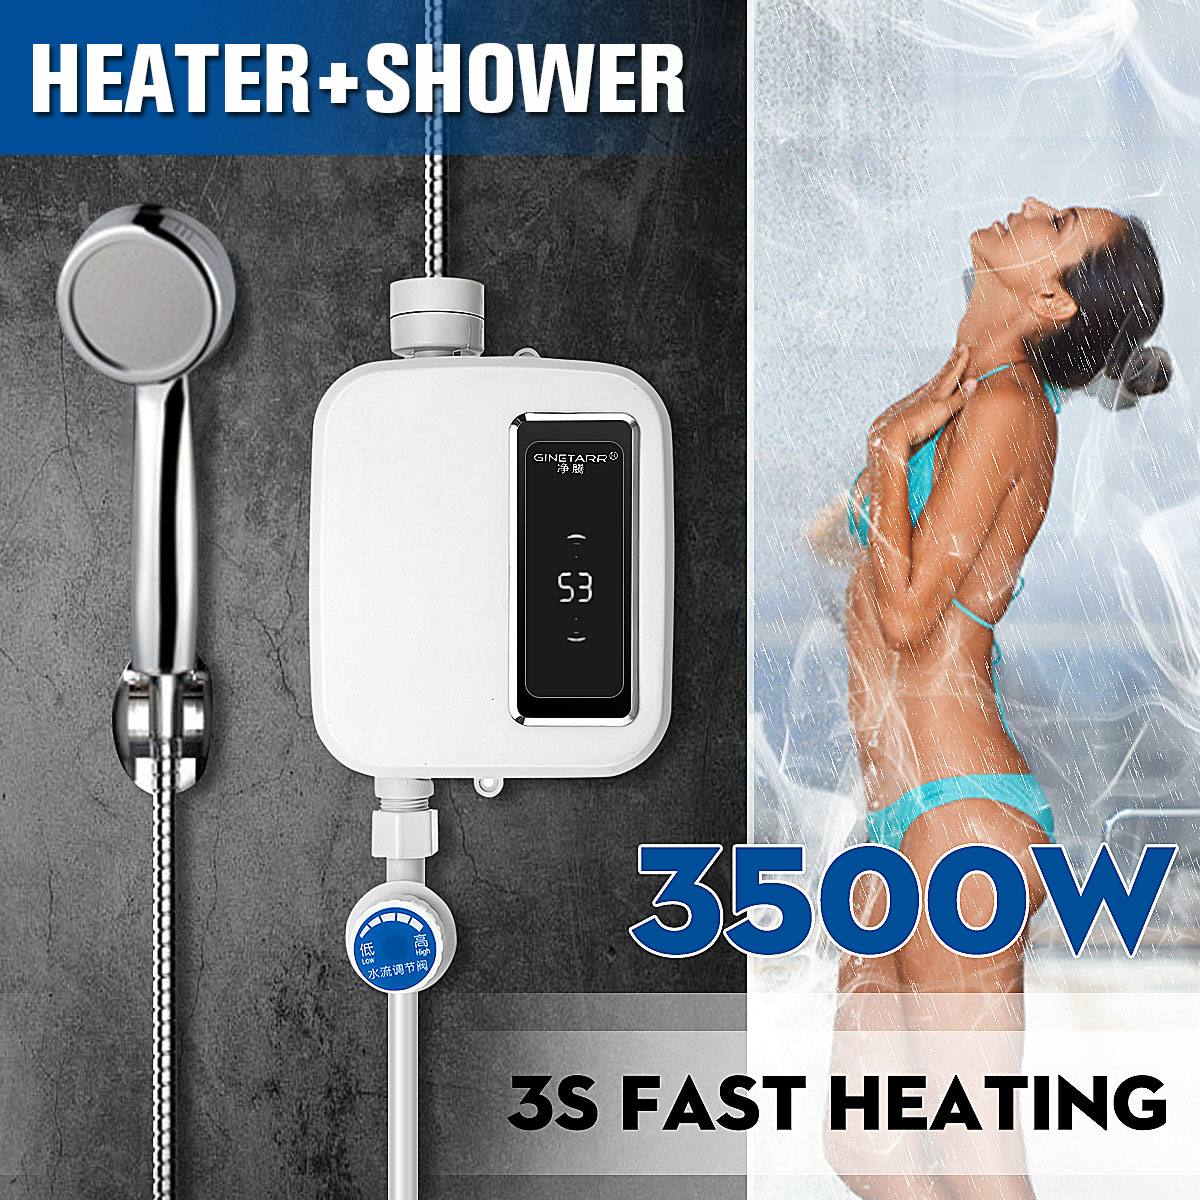 3500W miniature electric water heater, instant kitchen faucet, stainless steel heater, automatic constant temperature